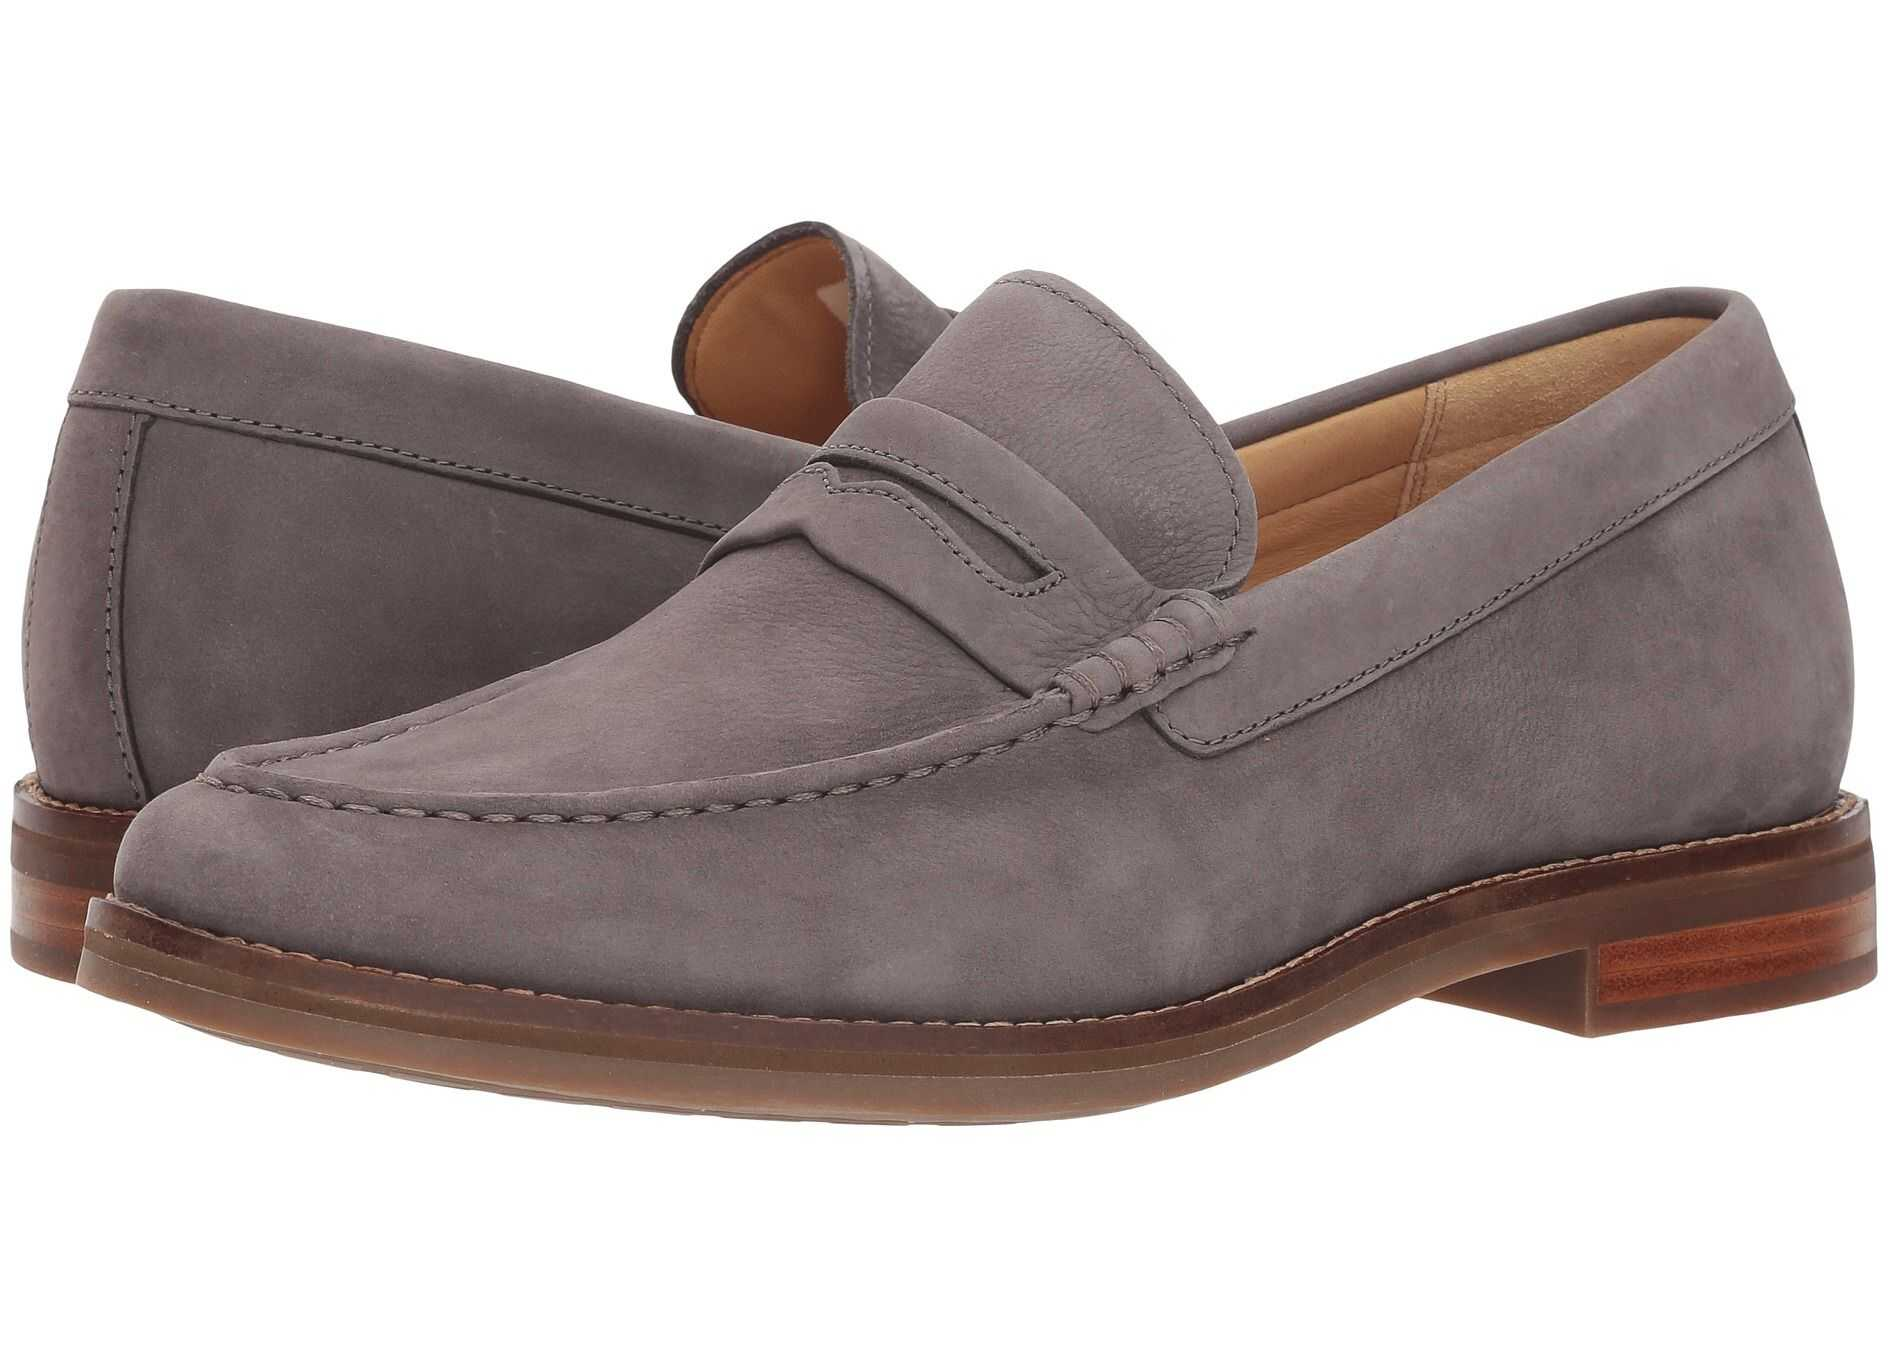 Sperry Top-Sider Gold Exeter Penny Loafer Grey Nubuck